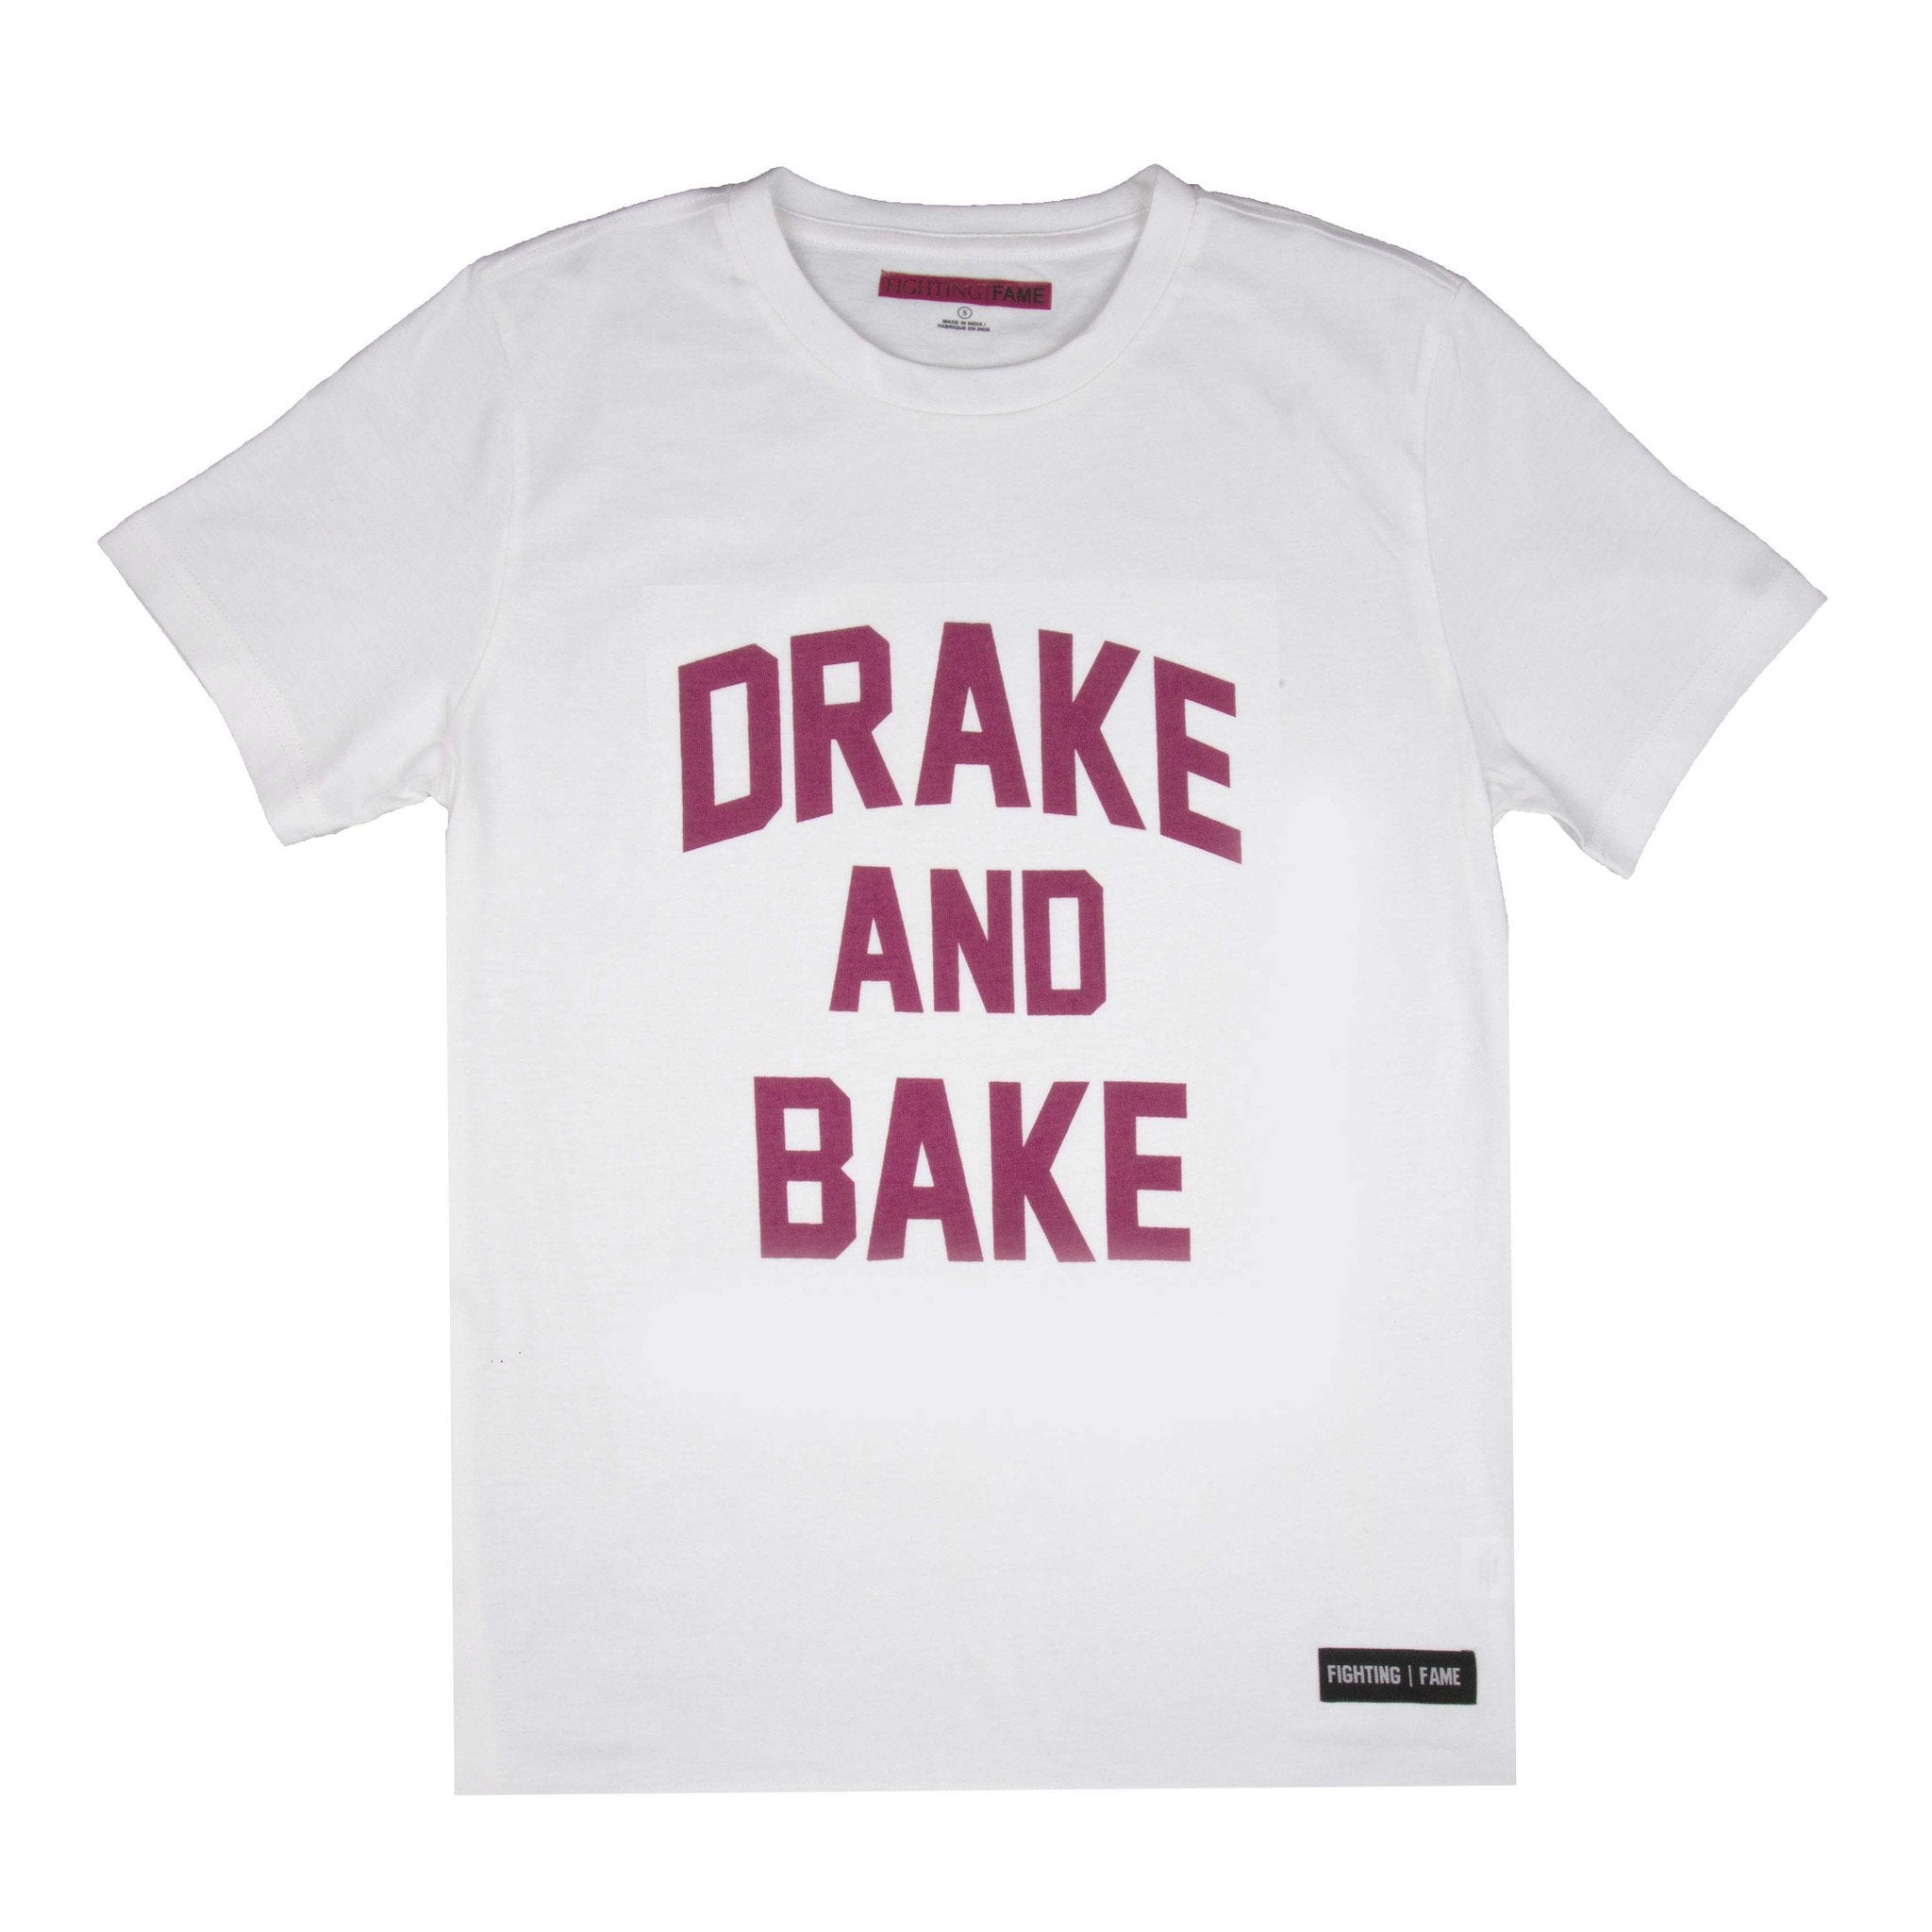 Drake And Bake White T-Shirt - Fighting Fame  - 1